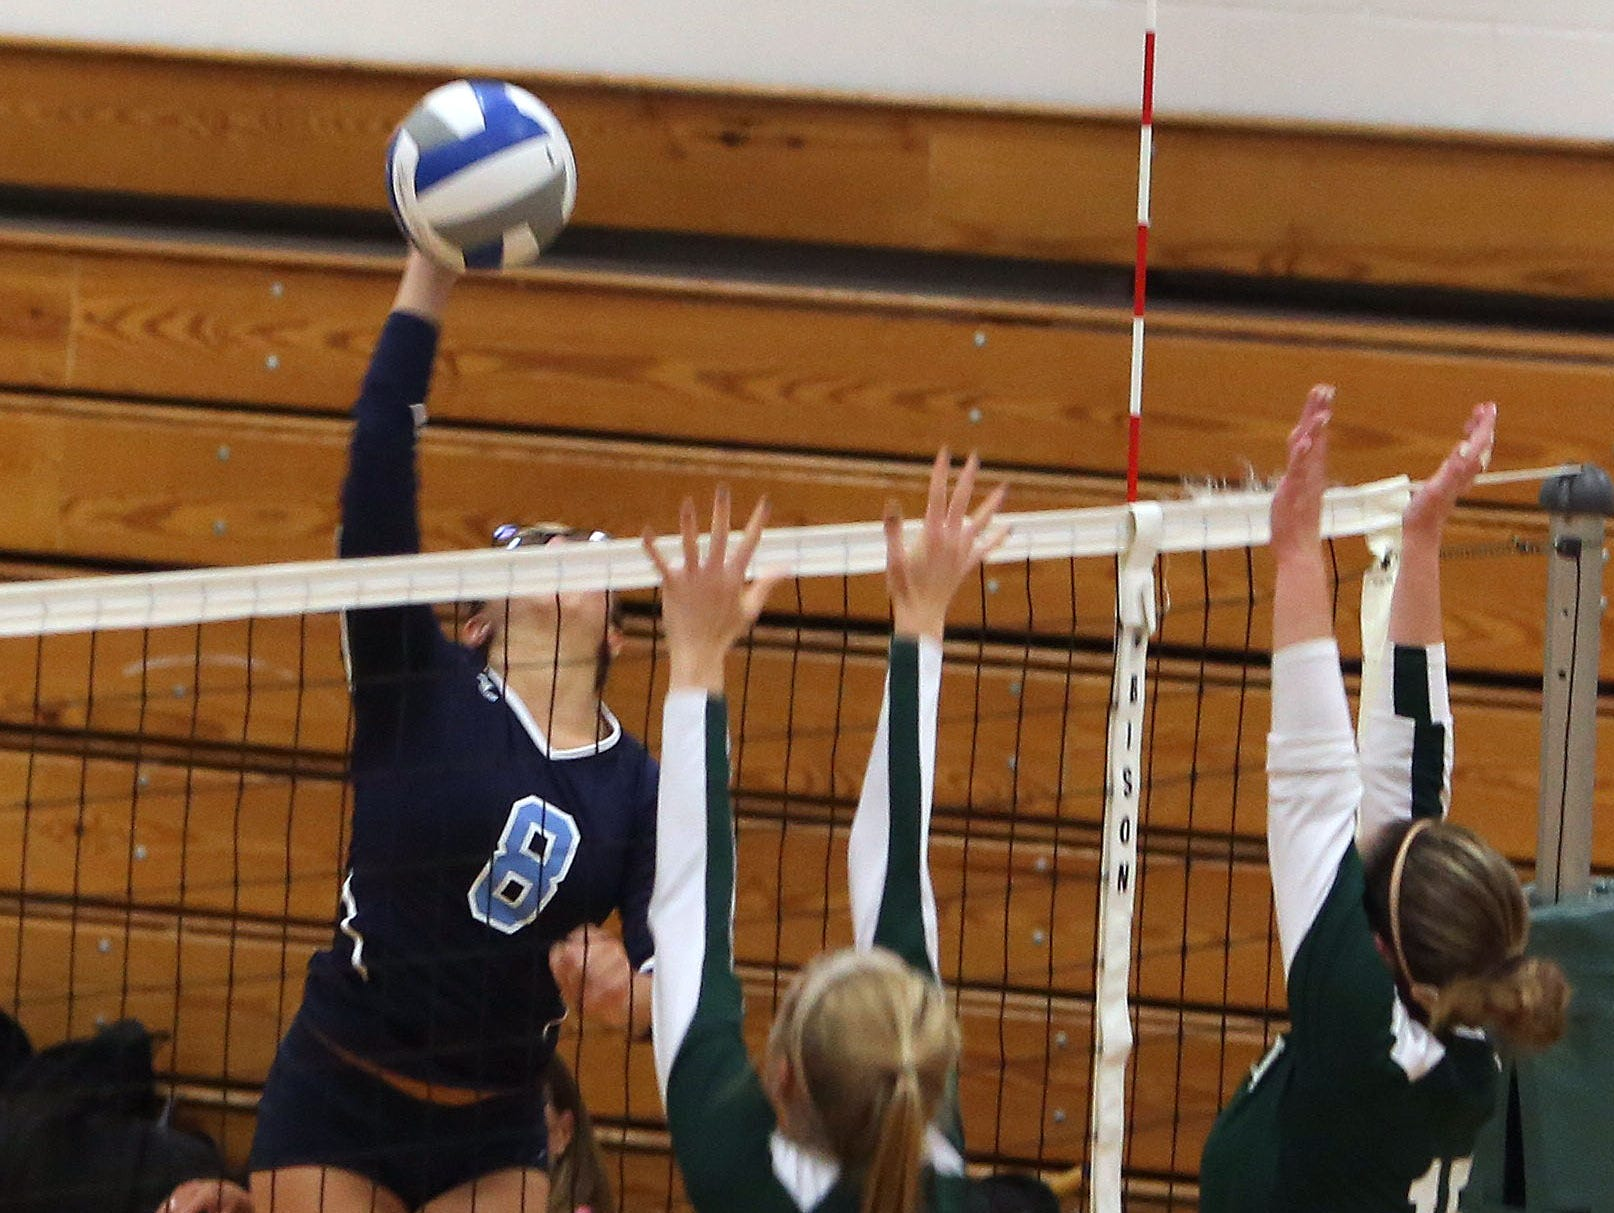 From left, Westlake's Sydney Roell (8) gets a shot by Pleasantville's Annie Stockel (10) and Carolyn Meaney (15) during volleyball action at Pleasantville High School Sept. 30, 2015.